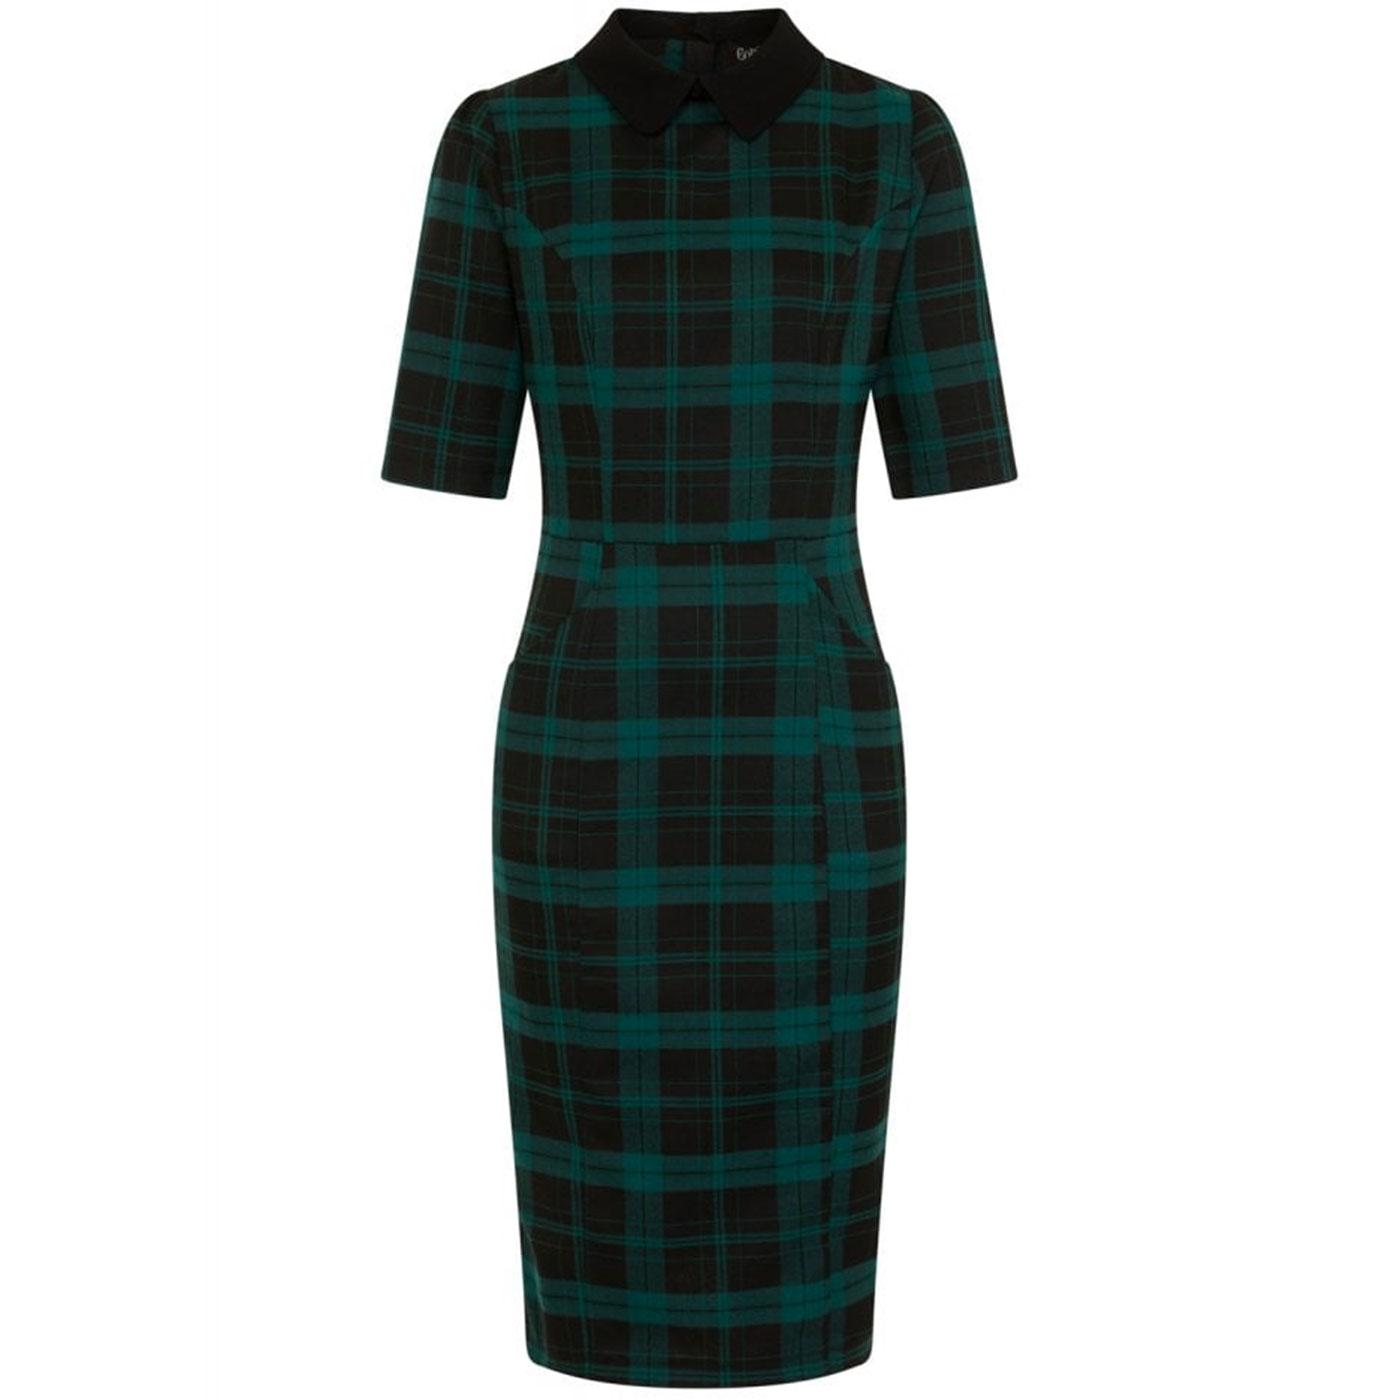 Winona COLLECTIF Tartan 1950s Pencil Dress Green